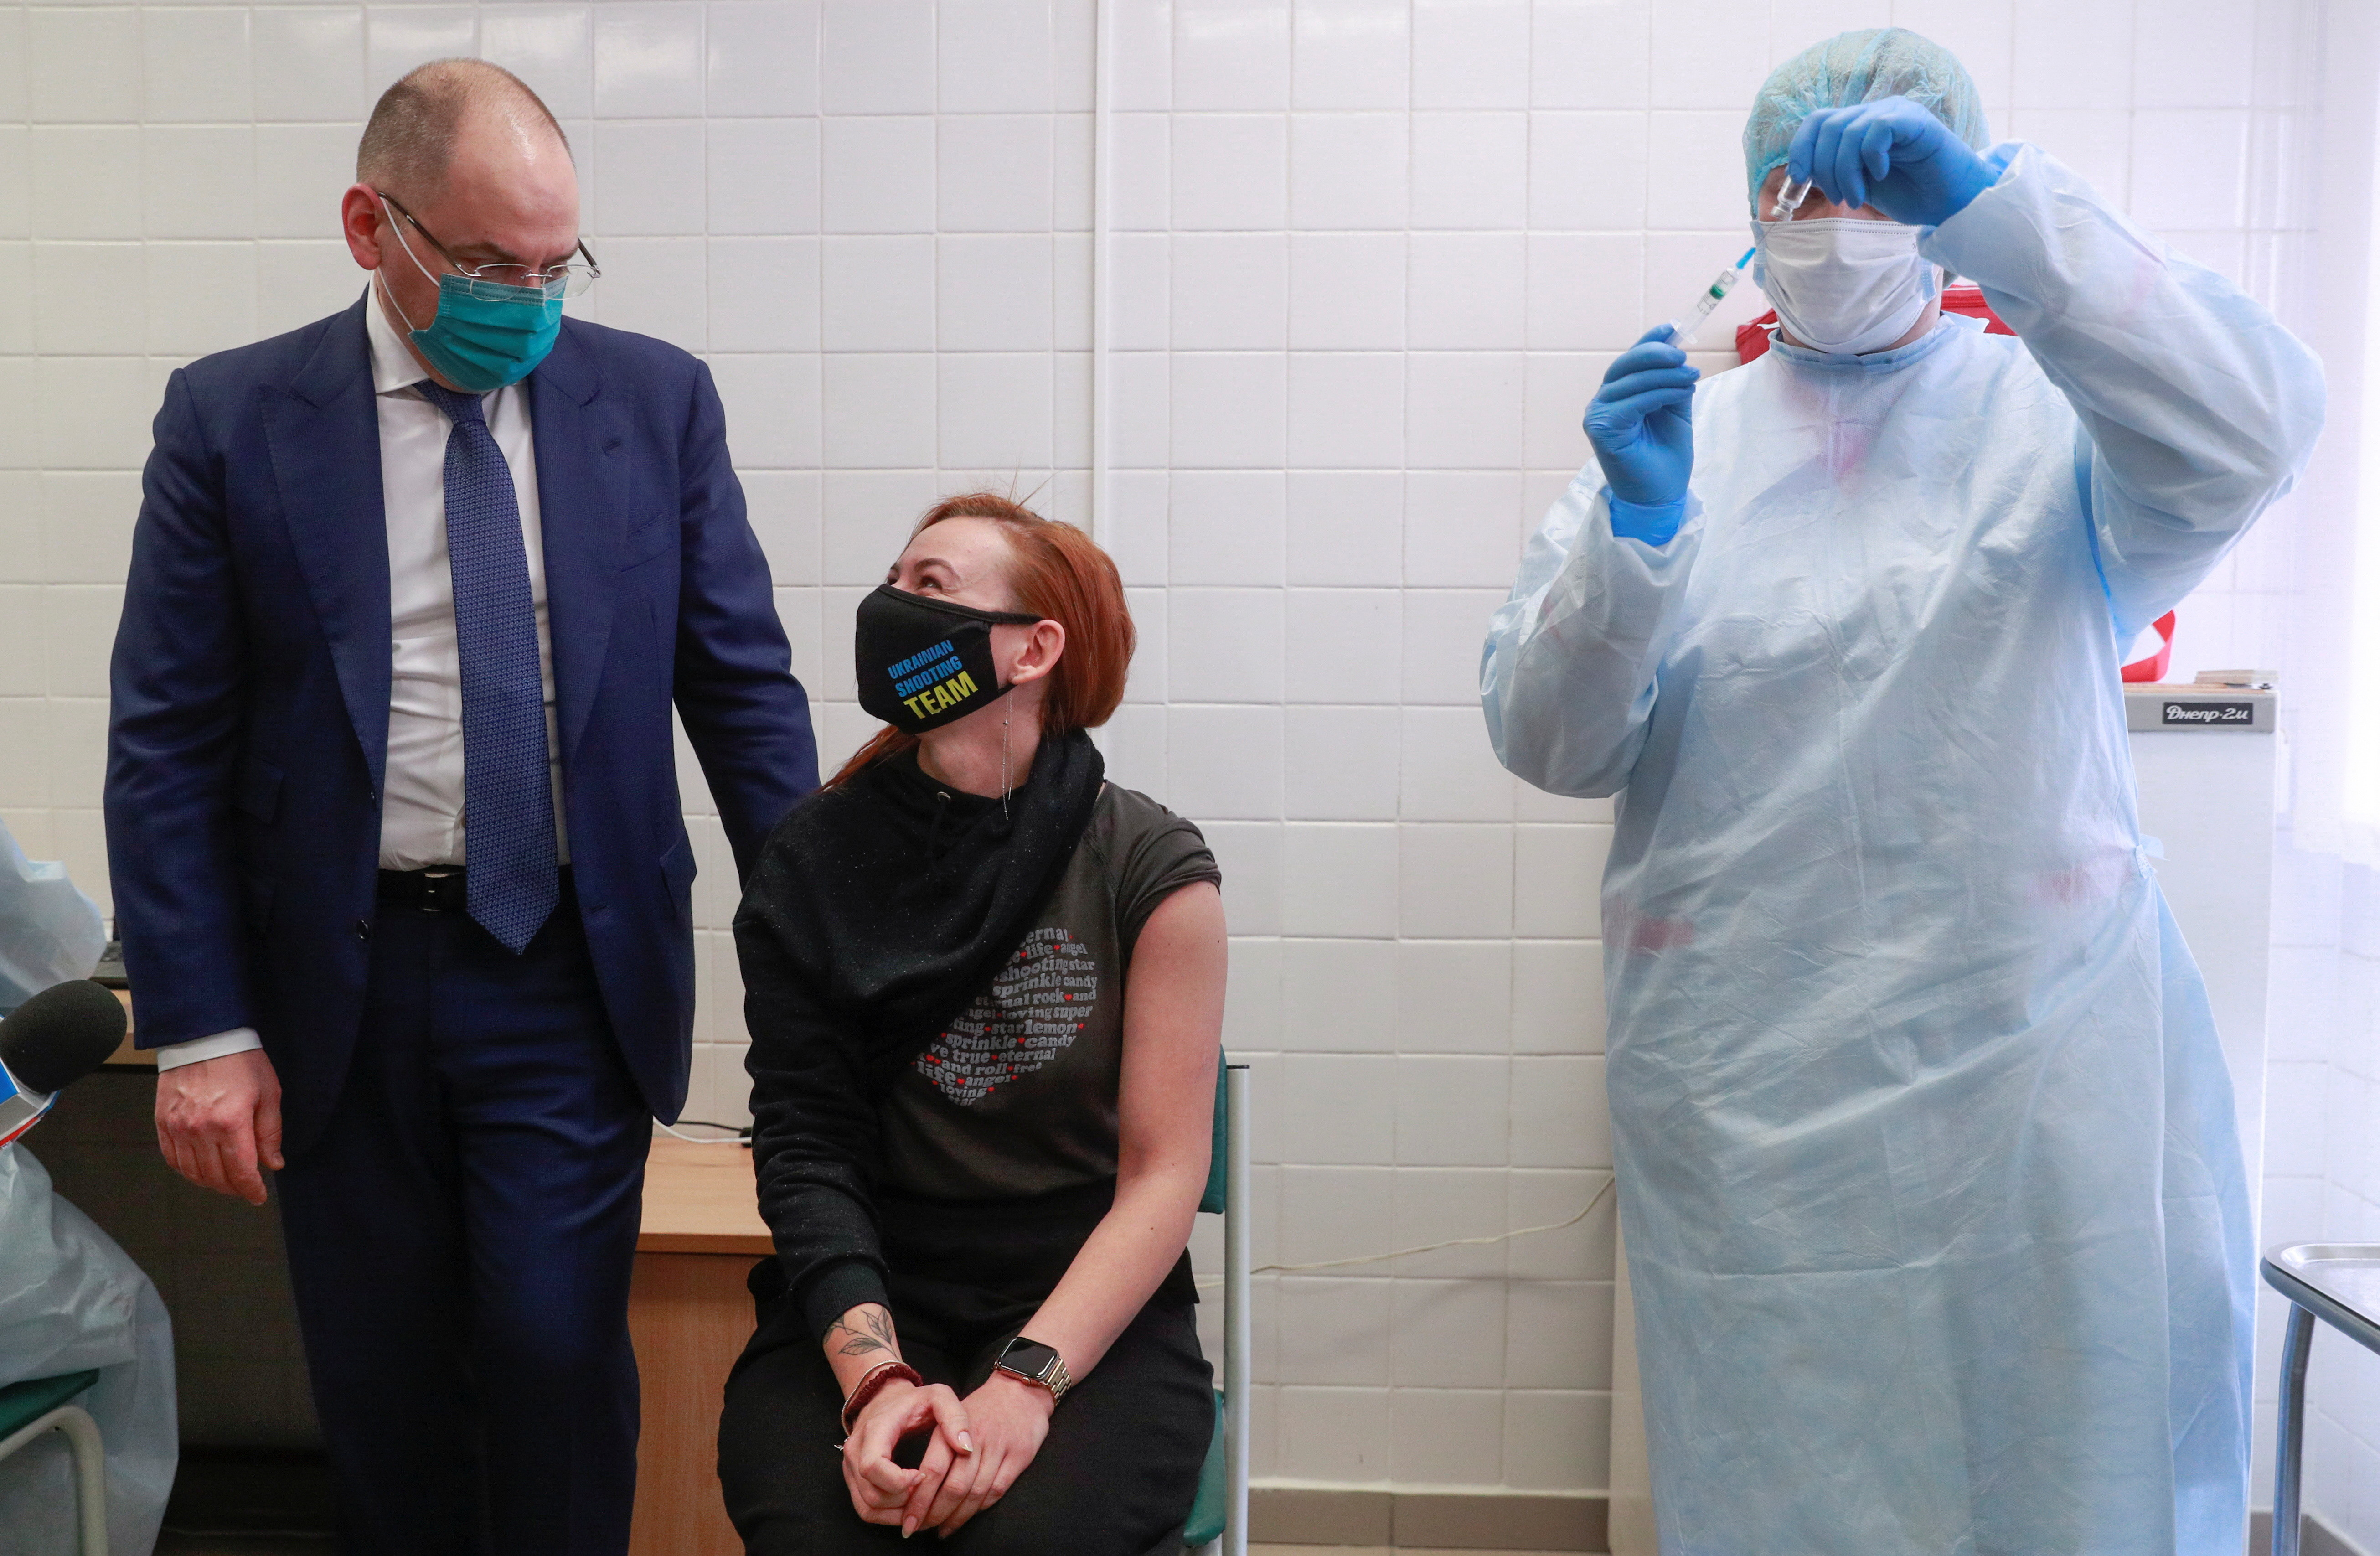 Ukrainian Health Minister Maksym Stepanov speaks with Anna Ilina, a member of the Ukrainian Olympic shooting team that will compete in the Tokyo 2020 Olympics, as she waits before receiving a dose of Chinese-developed CoronaVac vaccine against the coronavirus disease (COVID-19) in Kyiv, Ukraine April 15, 2021. REUTERS/Valentyn Ogirenko - RC29WM9FP122